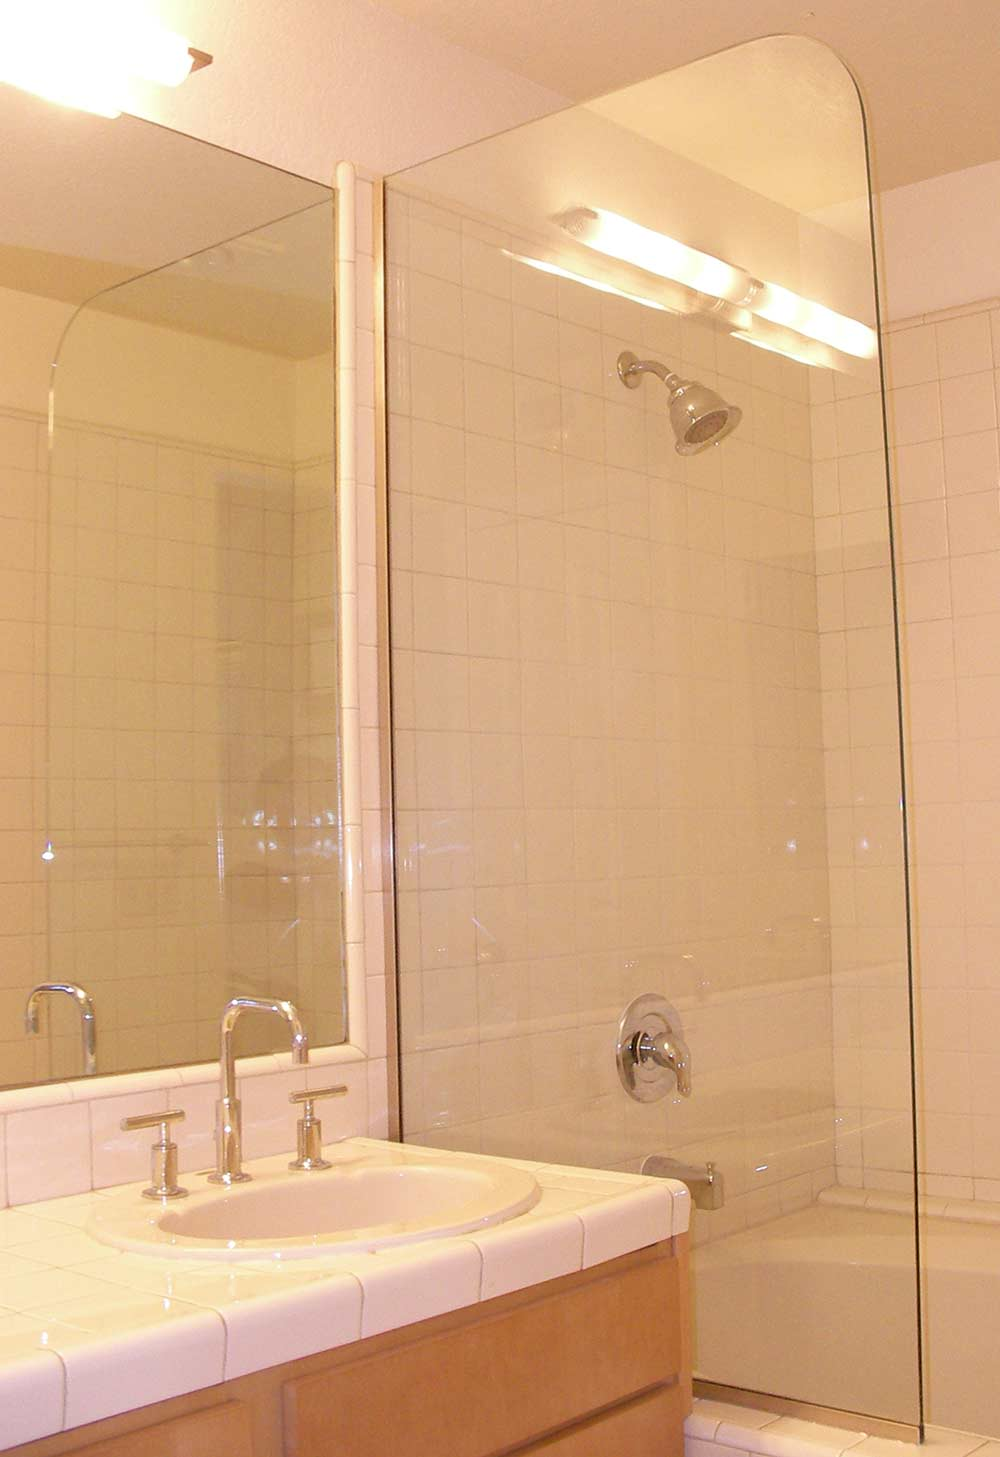 Shower Door Glass Best Choice One Glass Panel